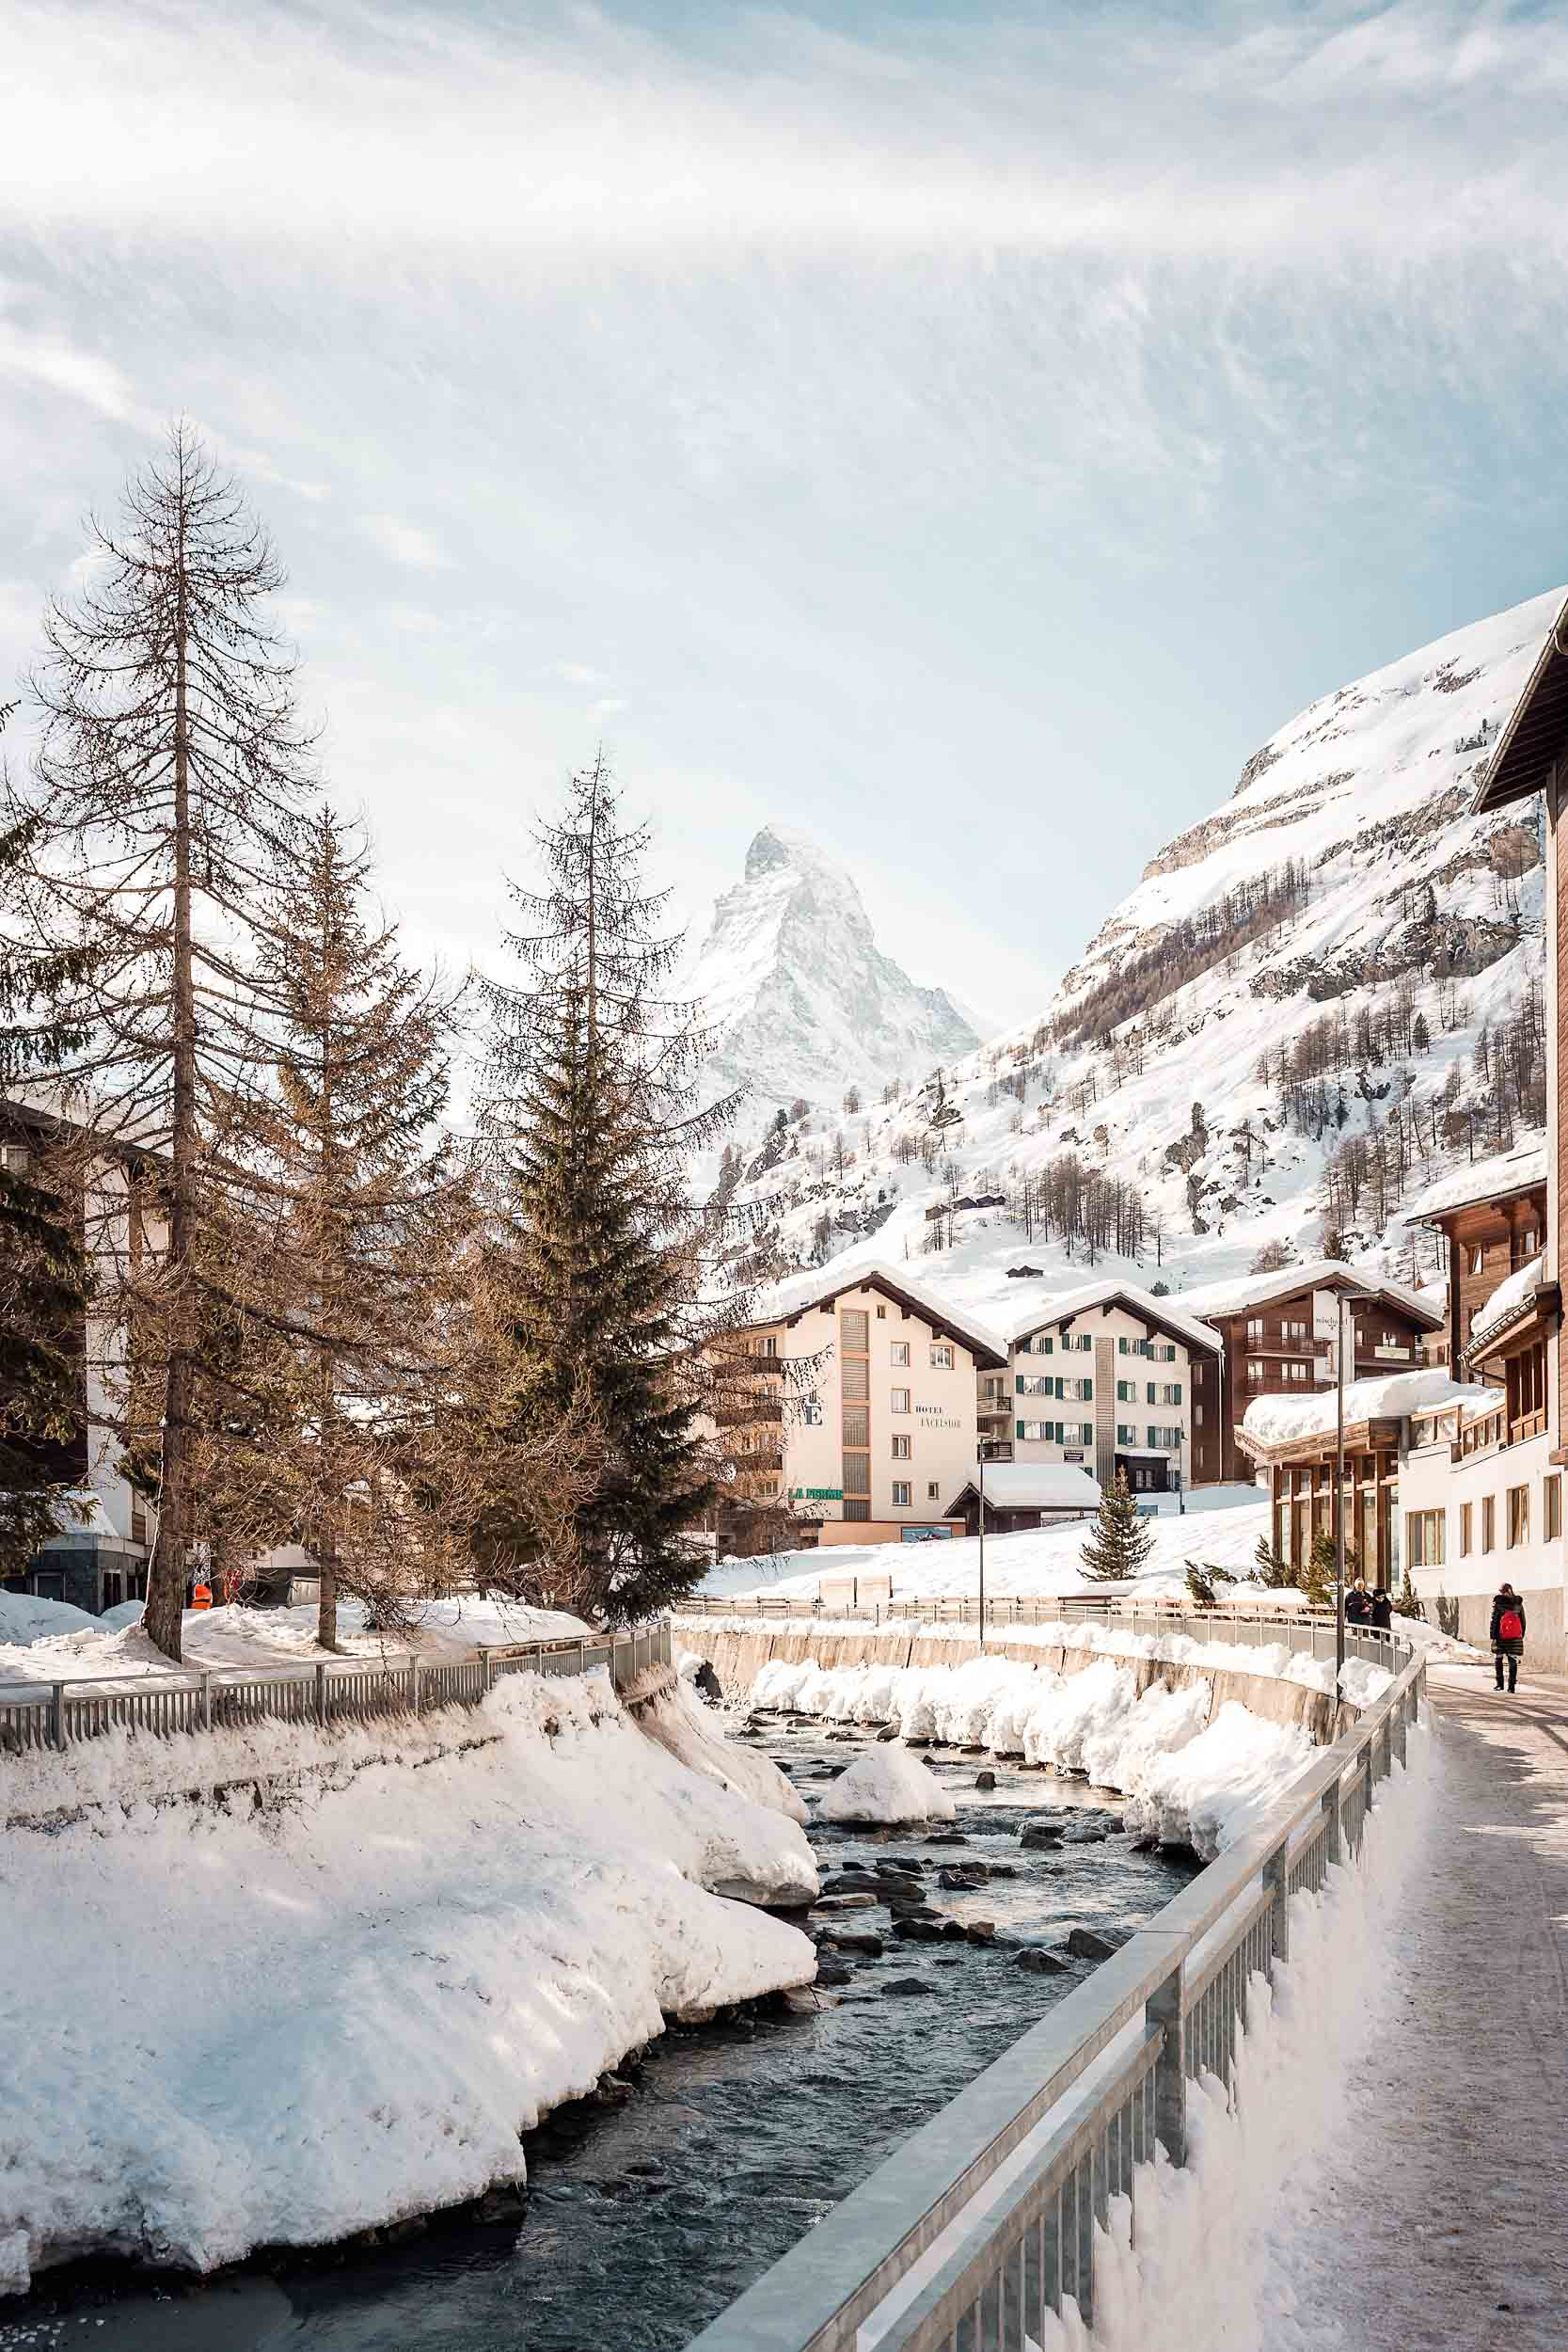 Want to see Europe in a week? Zermatt and Gstaad are the perfect spots to explore